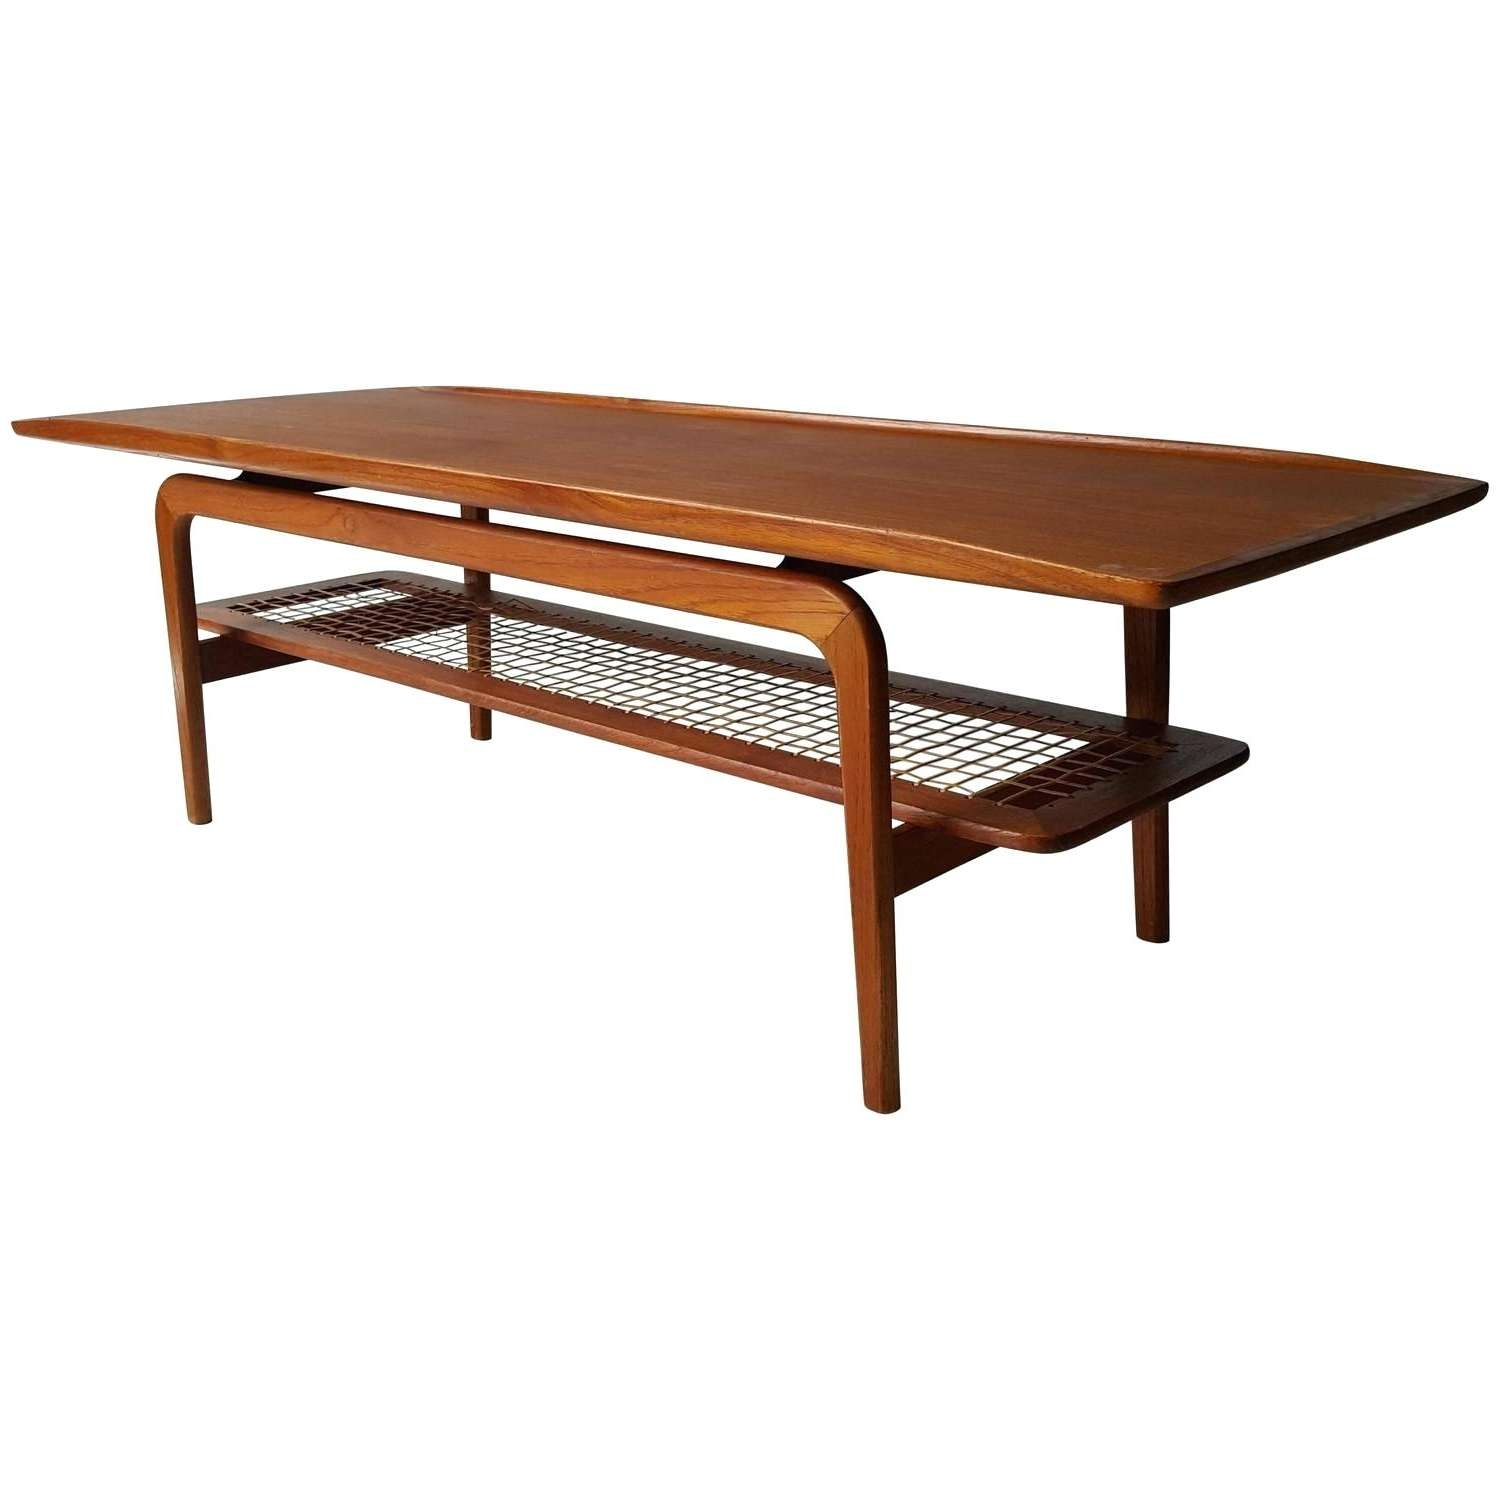 Fashionable Sixties Coffee Tables For Teak Coffee Table Danish From The Sixties Mid Century (View 6 of 20)